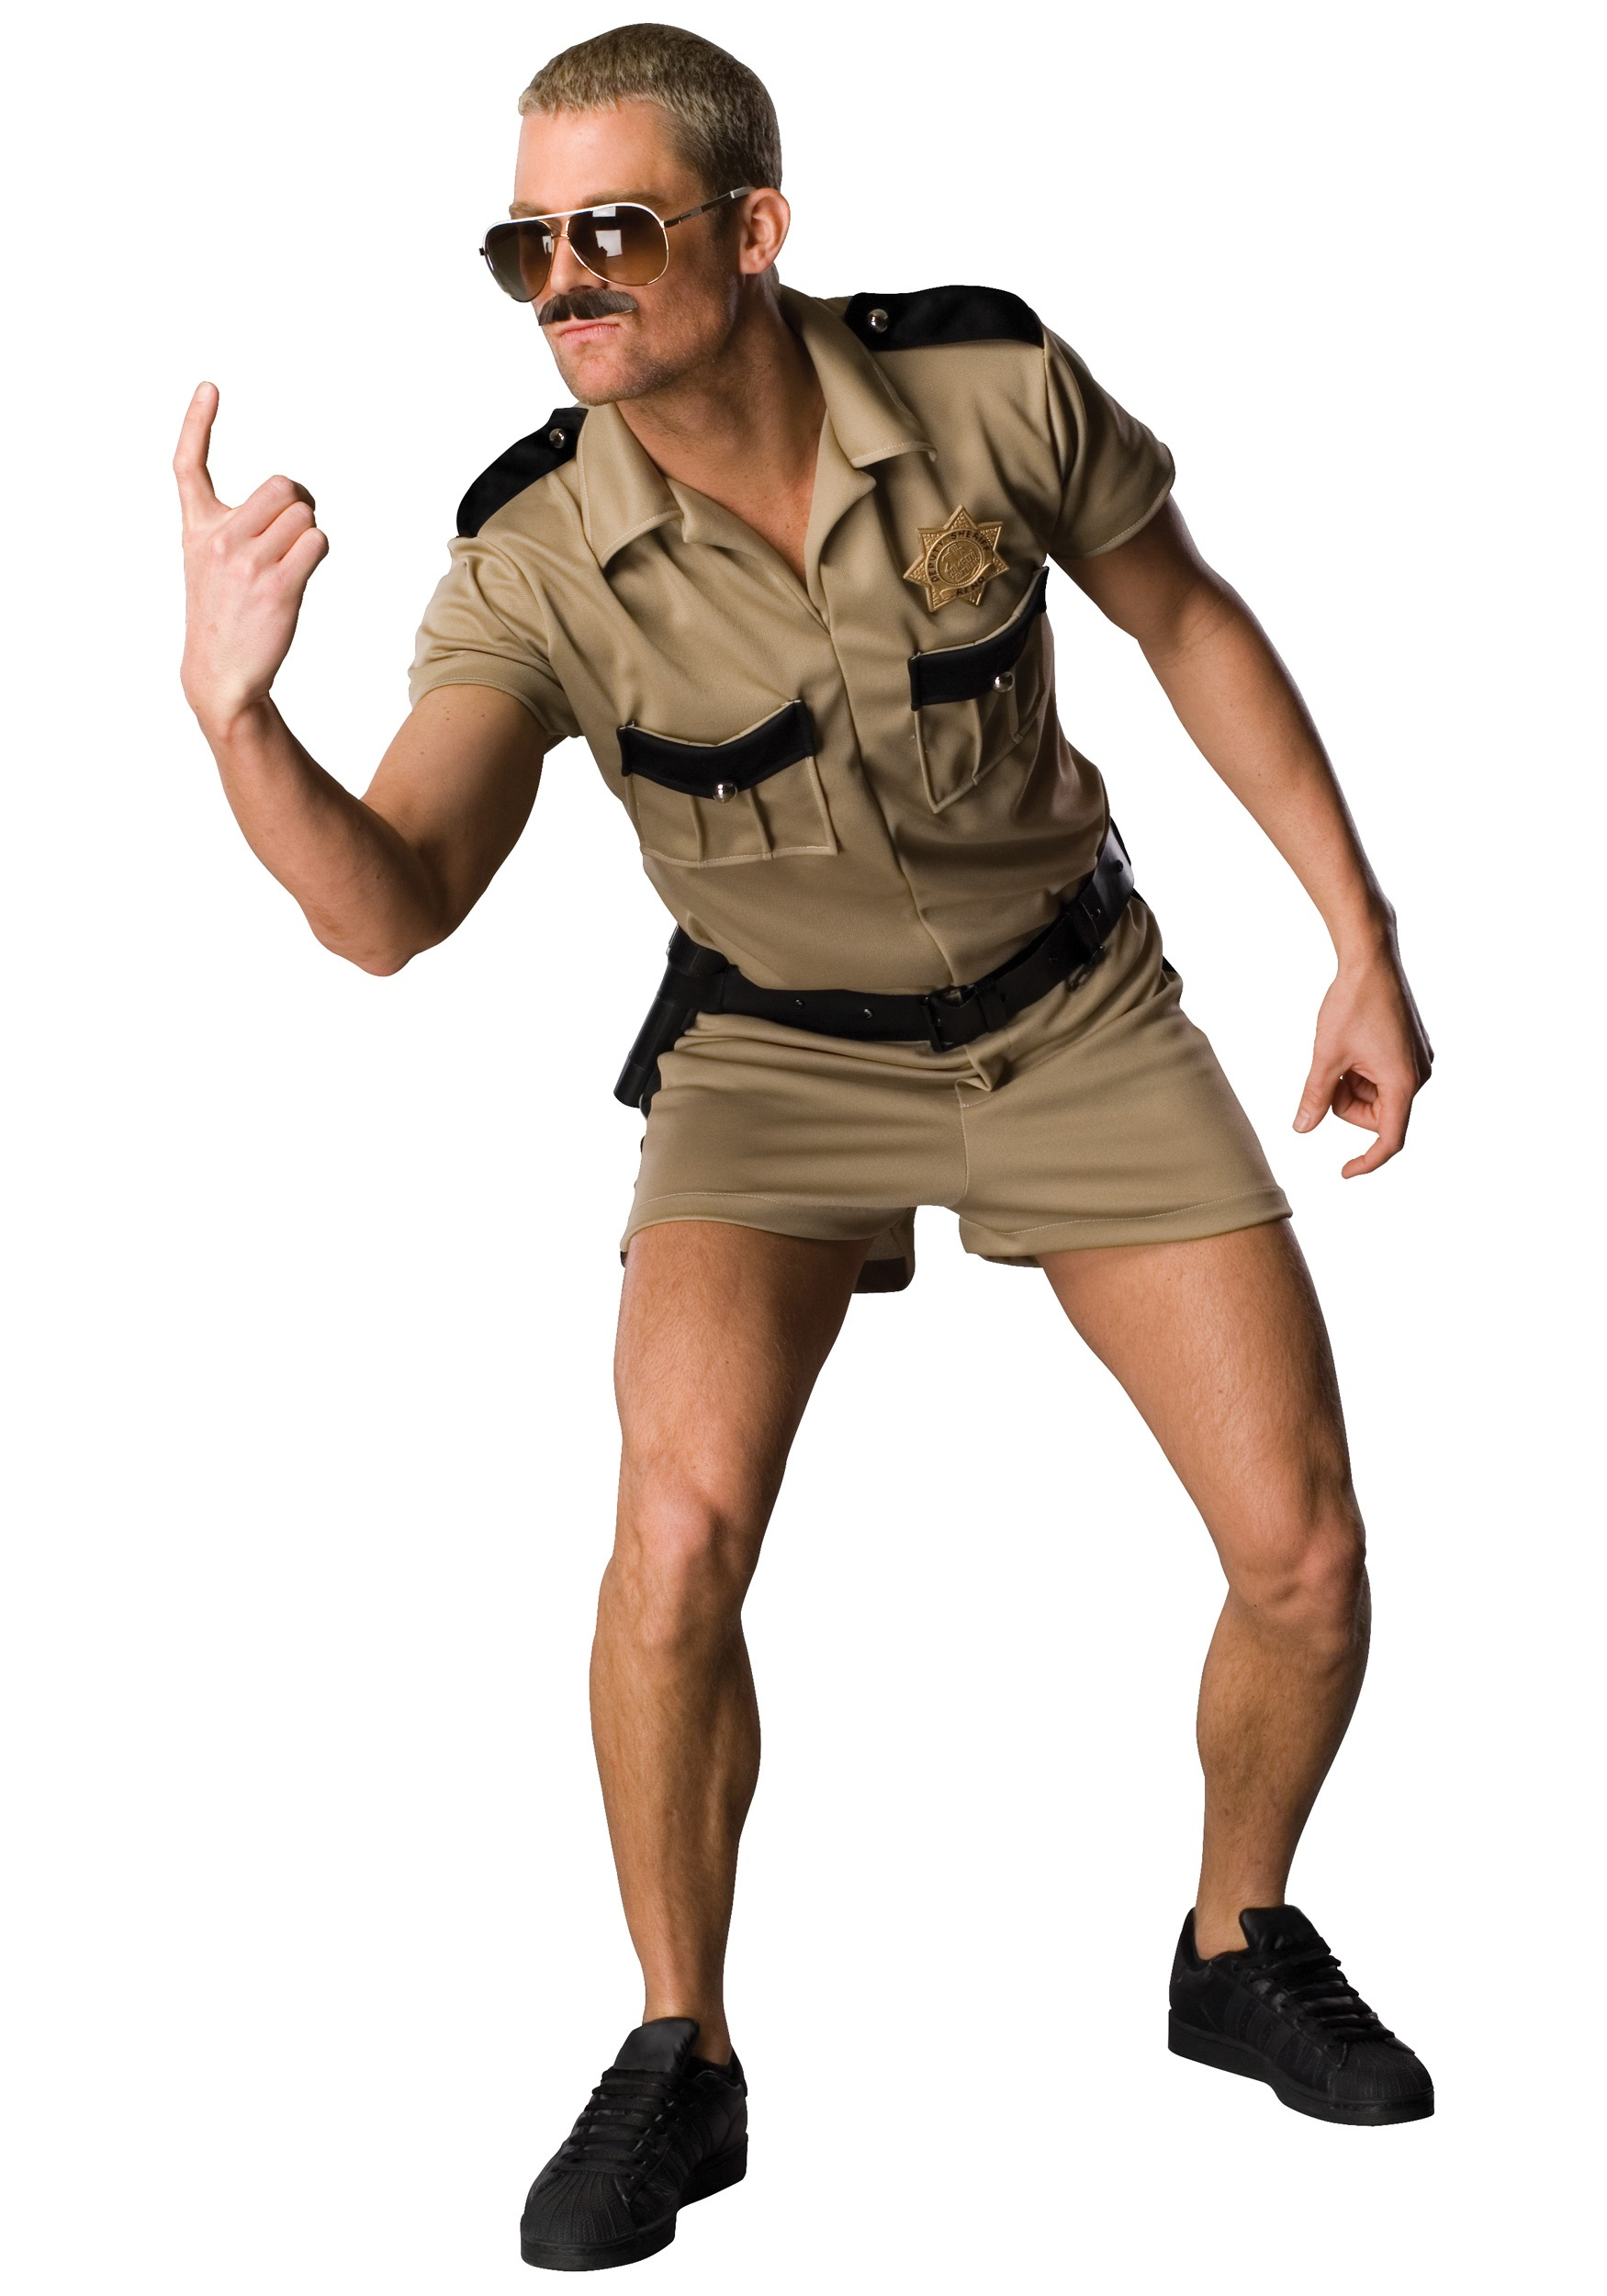 Lt. Dangle Costume  sc 1 st  Halloween Costumes : best halloween costumes for ladies  - Germanpascual.Com